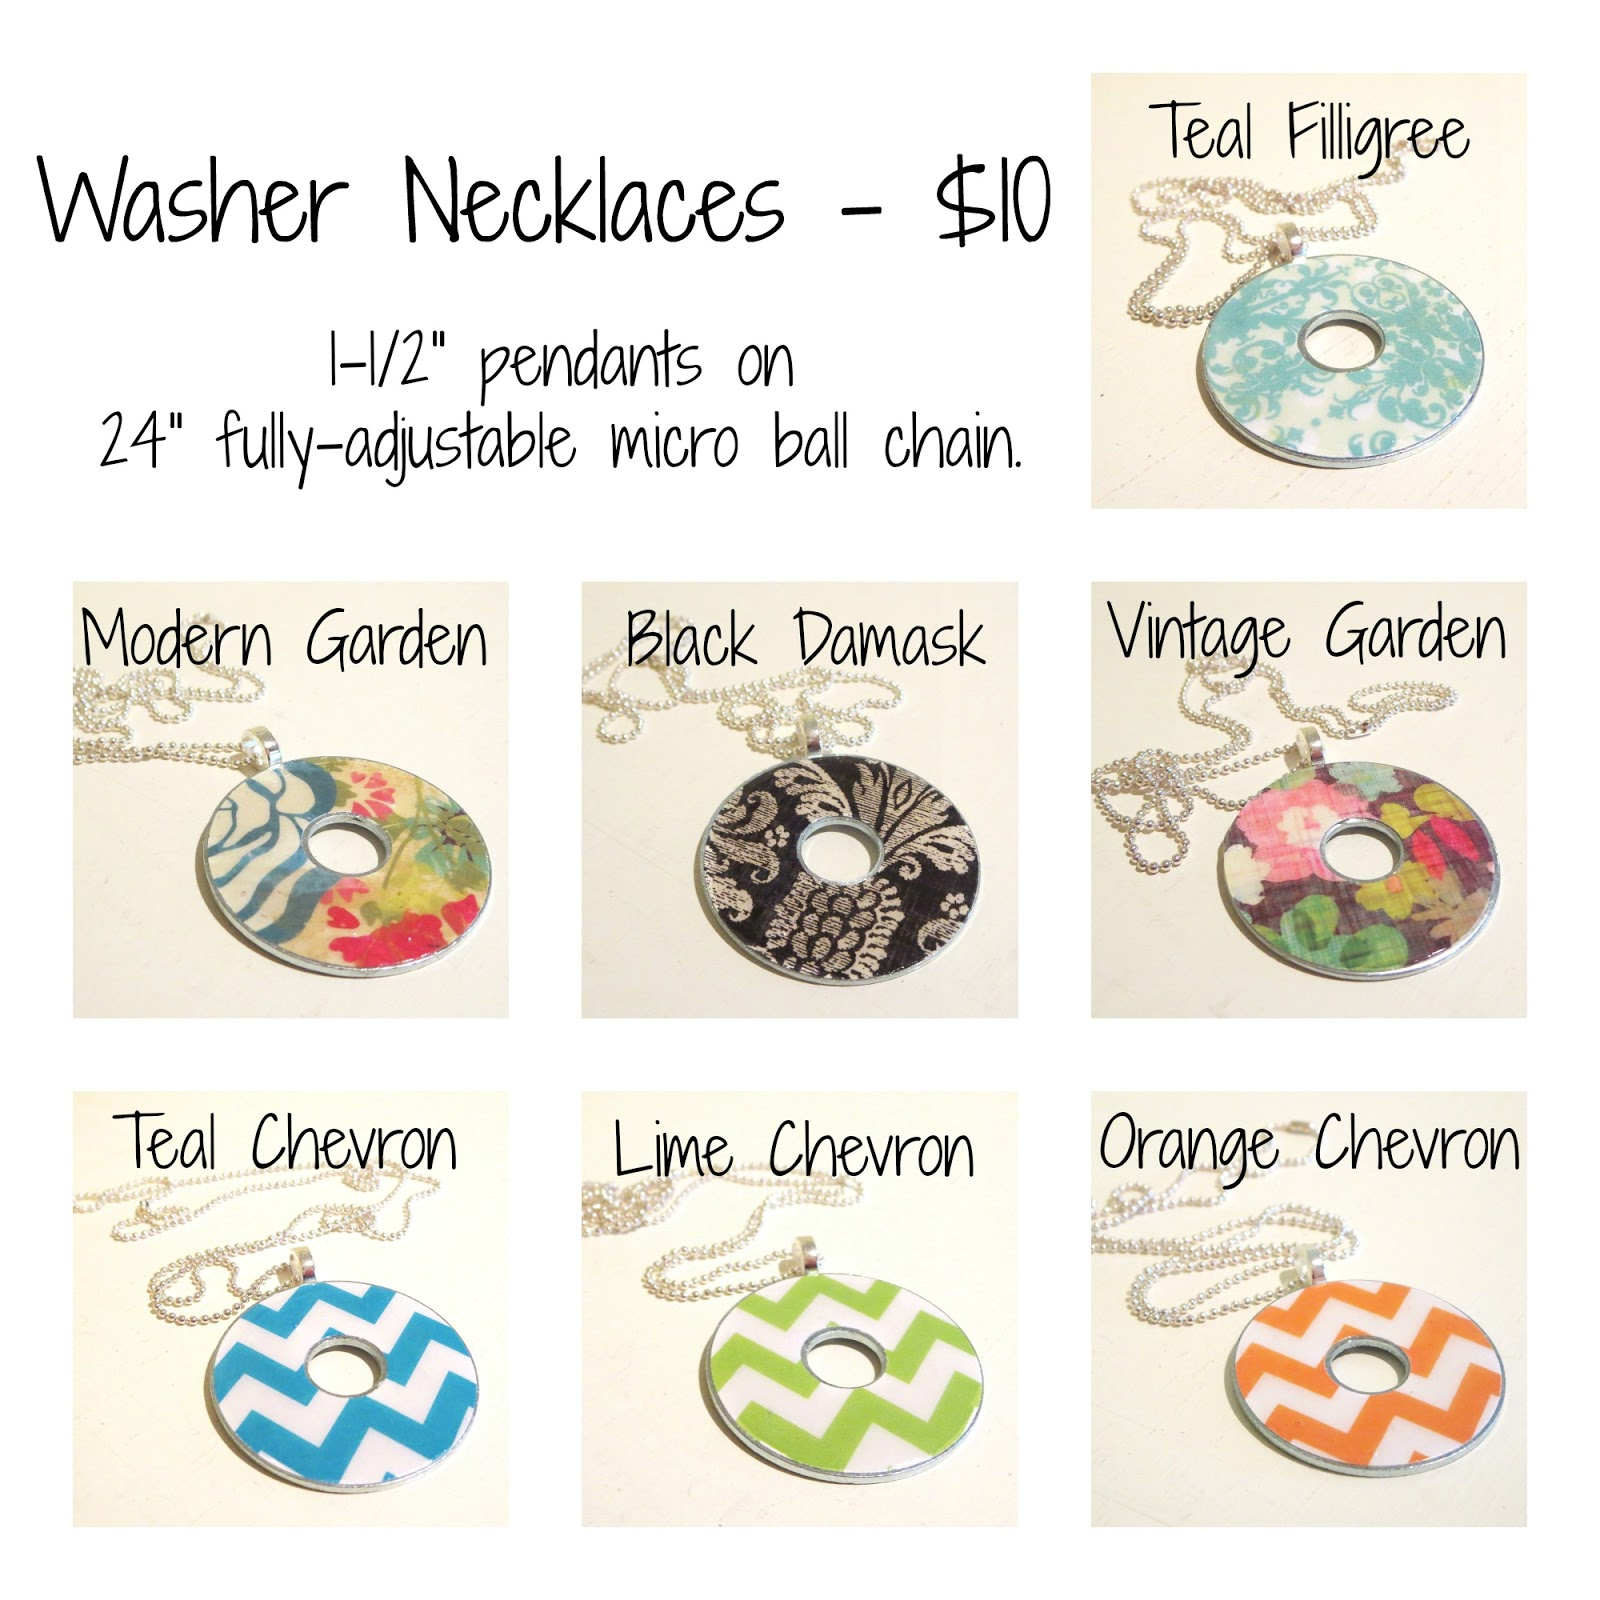 Looking for necklaces??